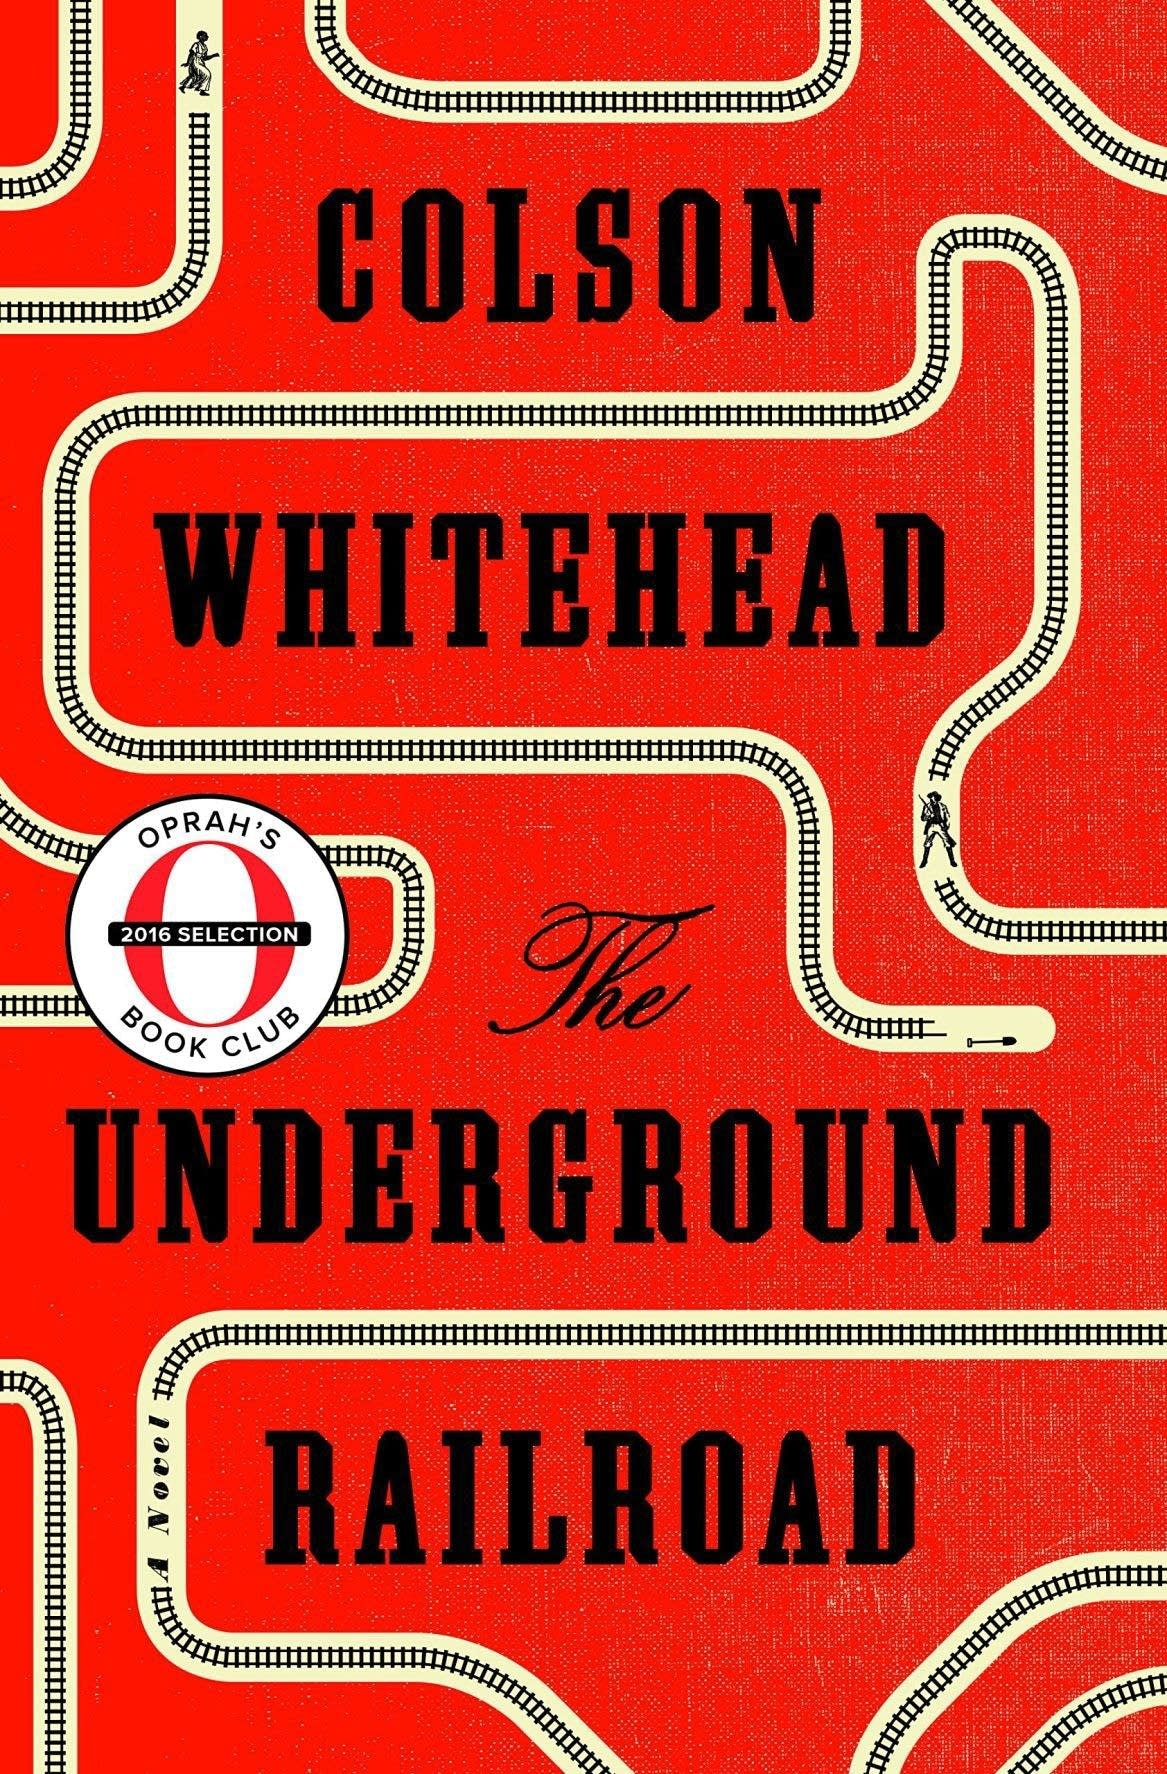 'Underground Railroad' by Colson Whitehead